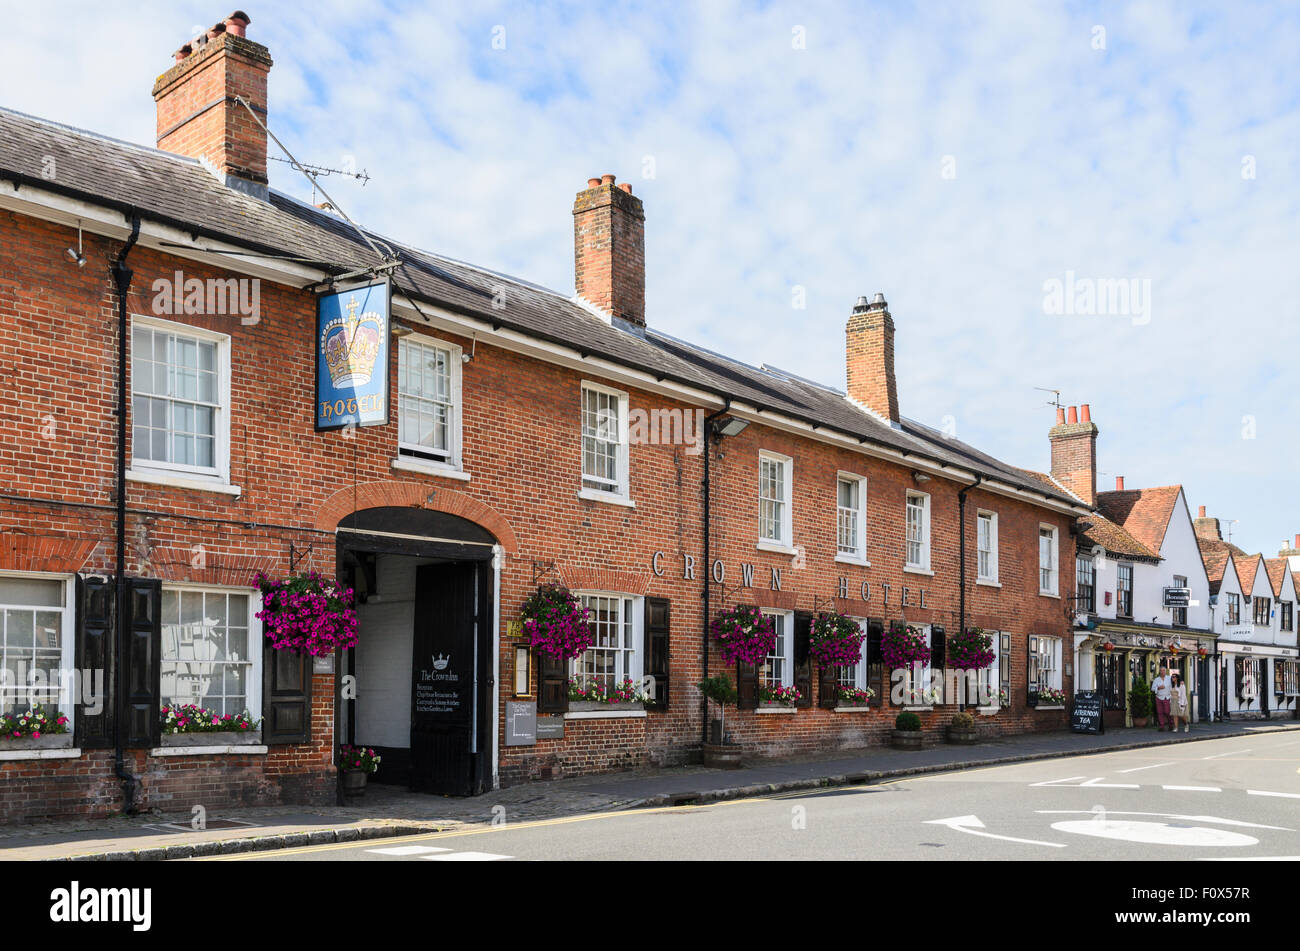 The Crown Inn, High St, Old Amersham, Buckinghamshire, England, UK. - Stock Image